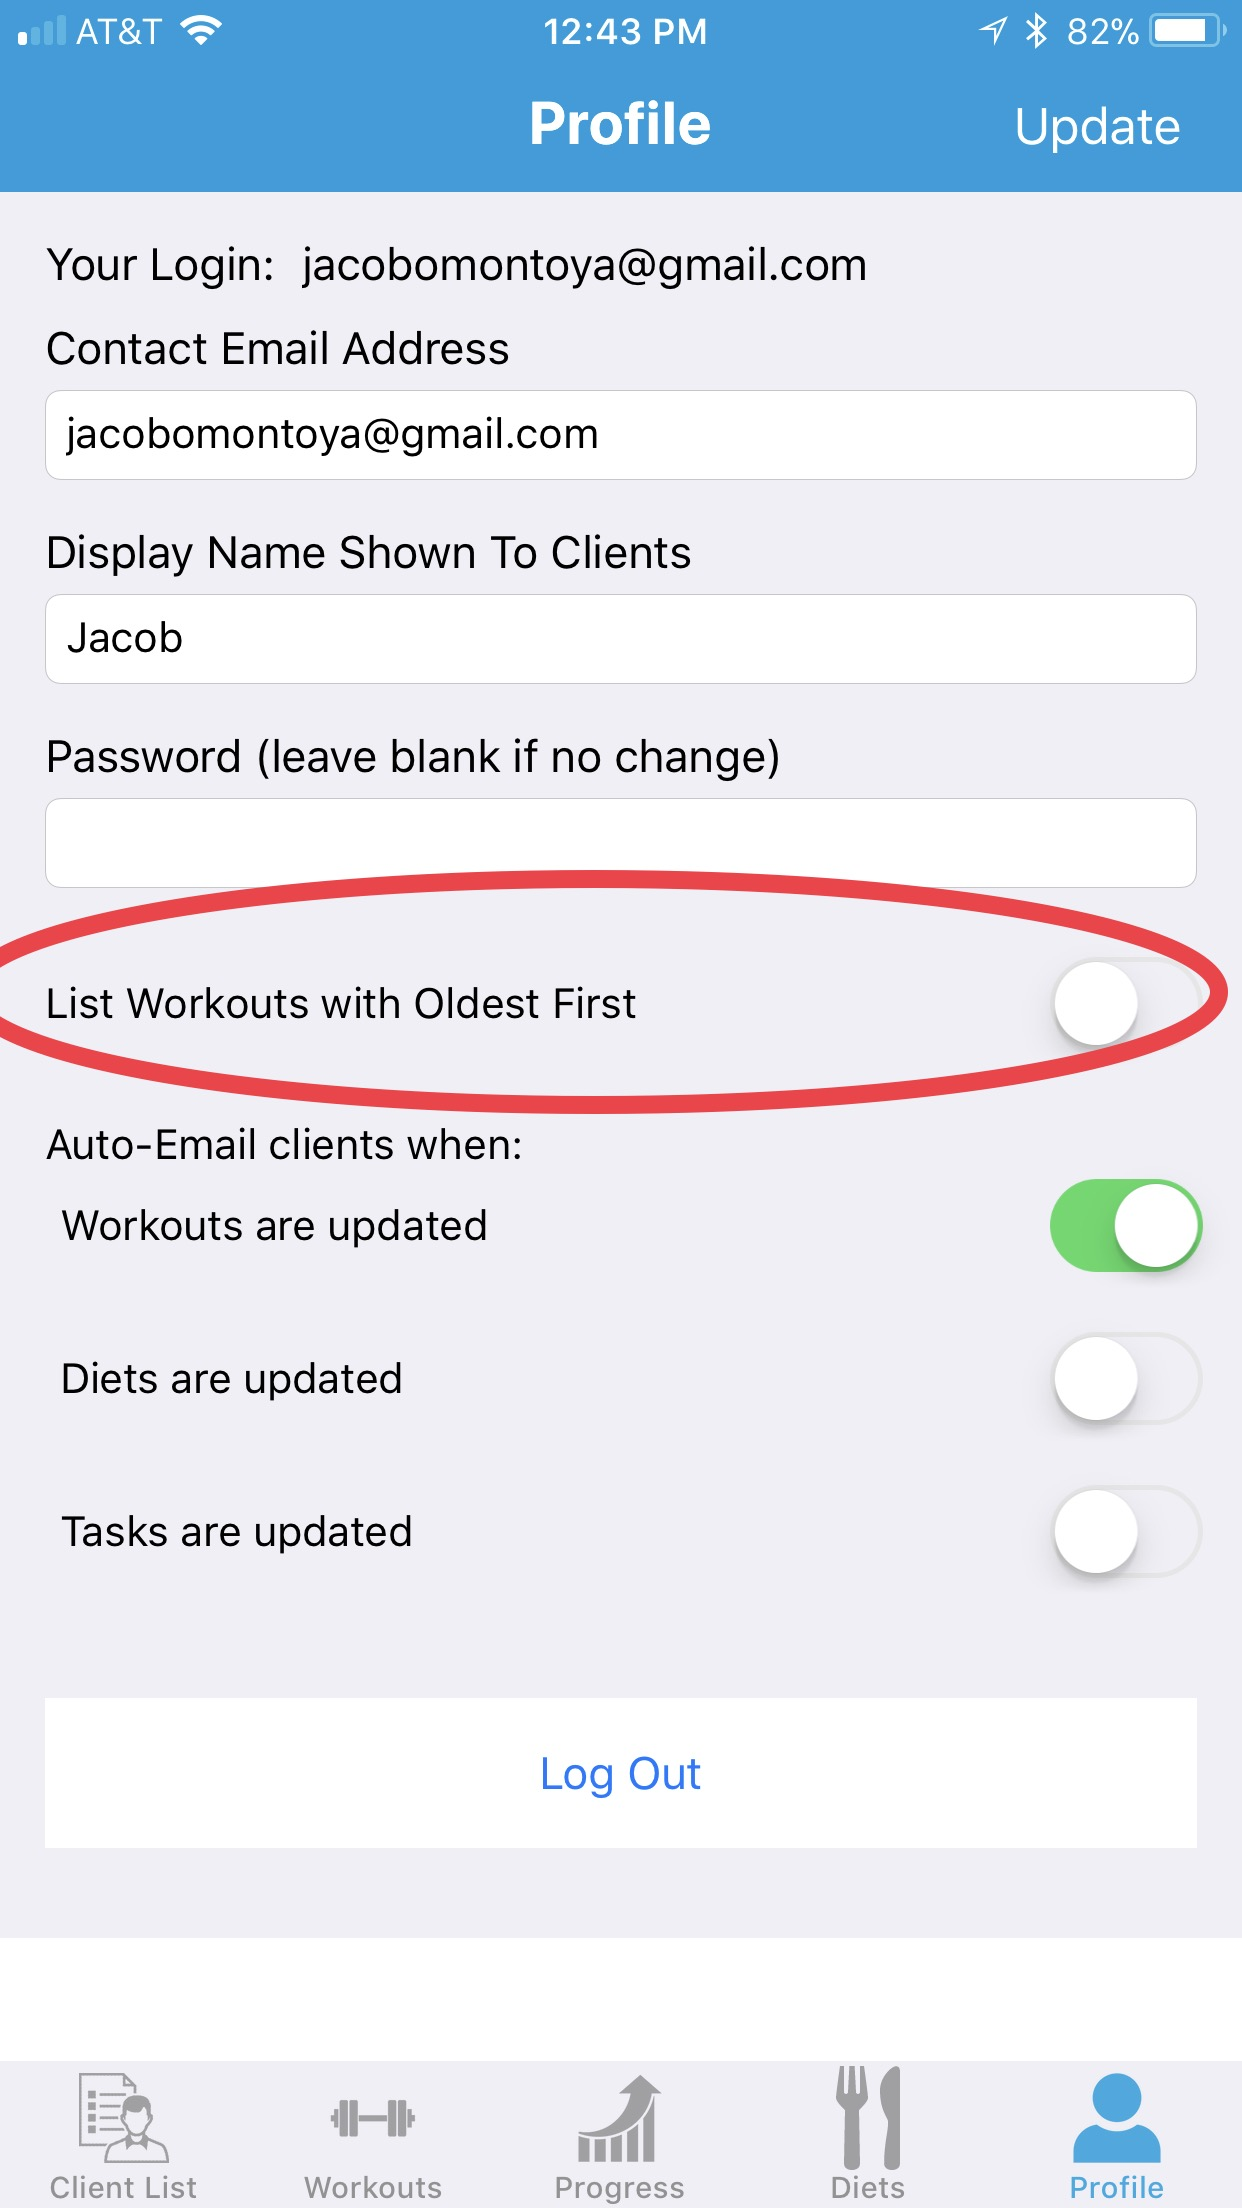 You can now choose the display order for your workouts, tasks, and events on your profile tab. Total Diet Macros Display as well.